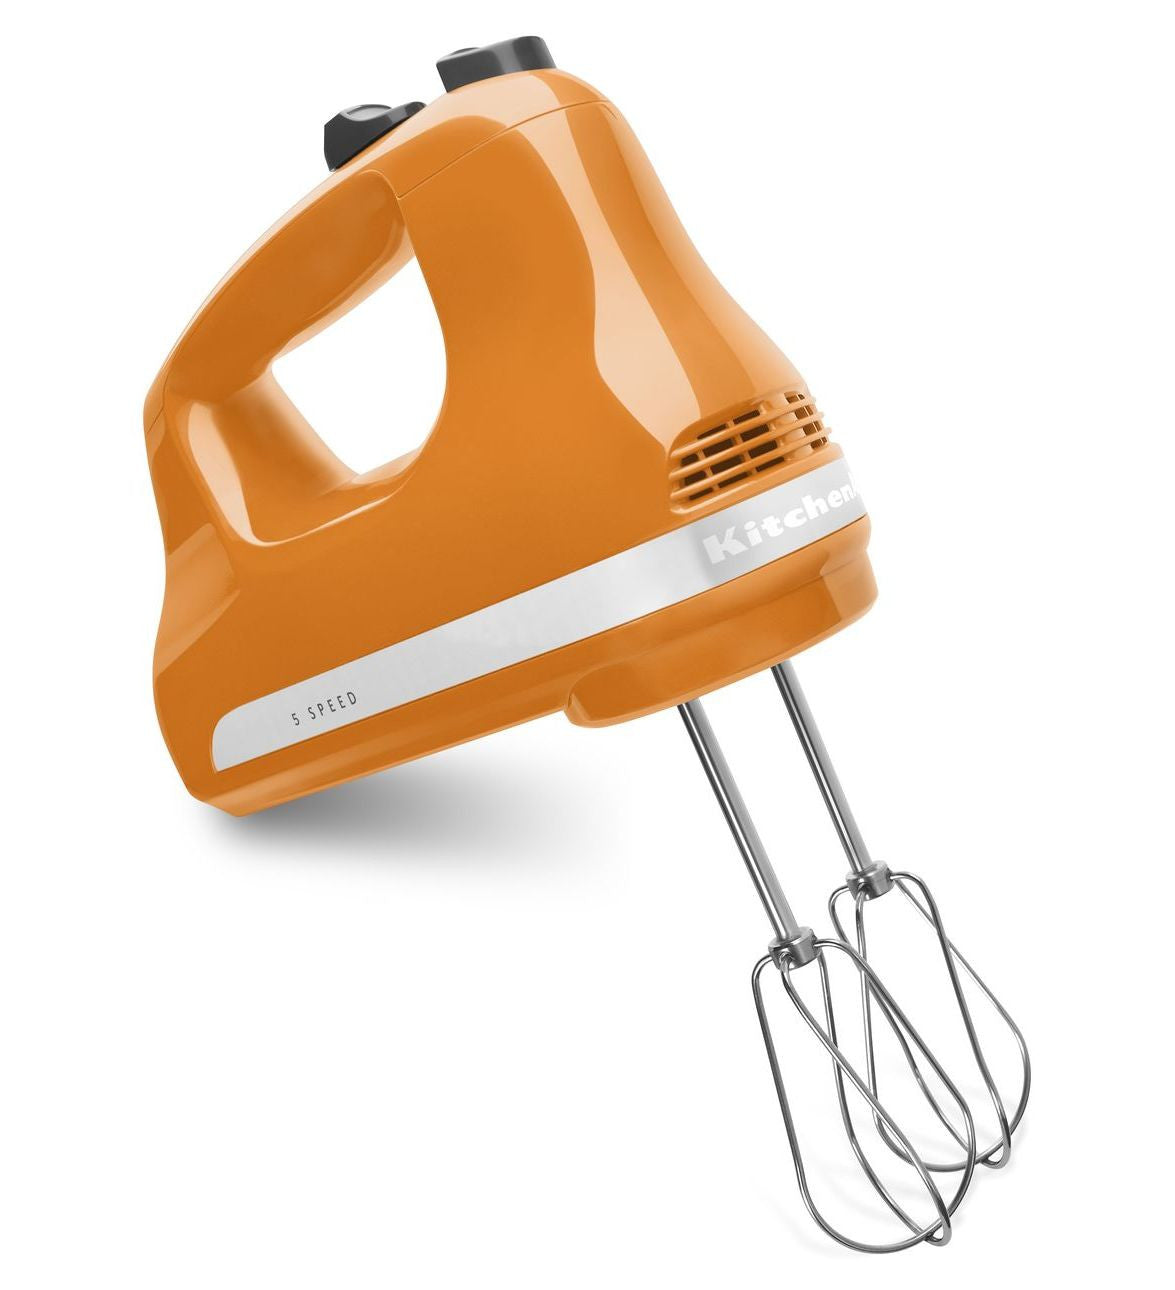 Kitchenaid 5-Speed Slide Control Ultra Power Hand Mixer - Tangerine KHM512TG